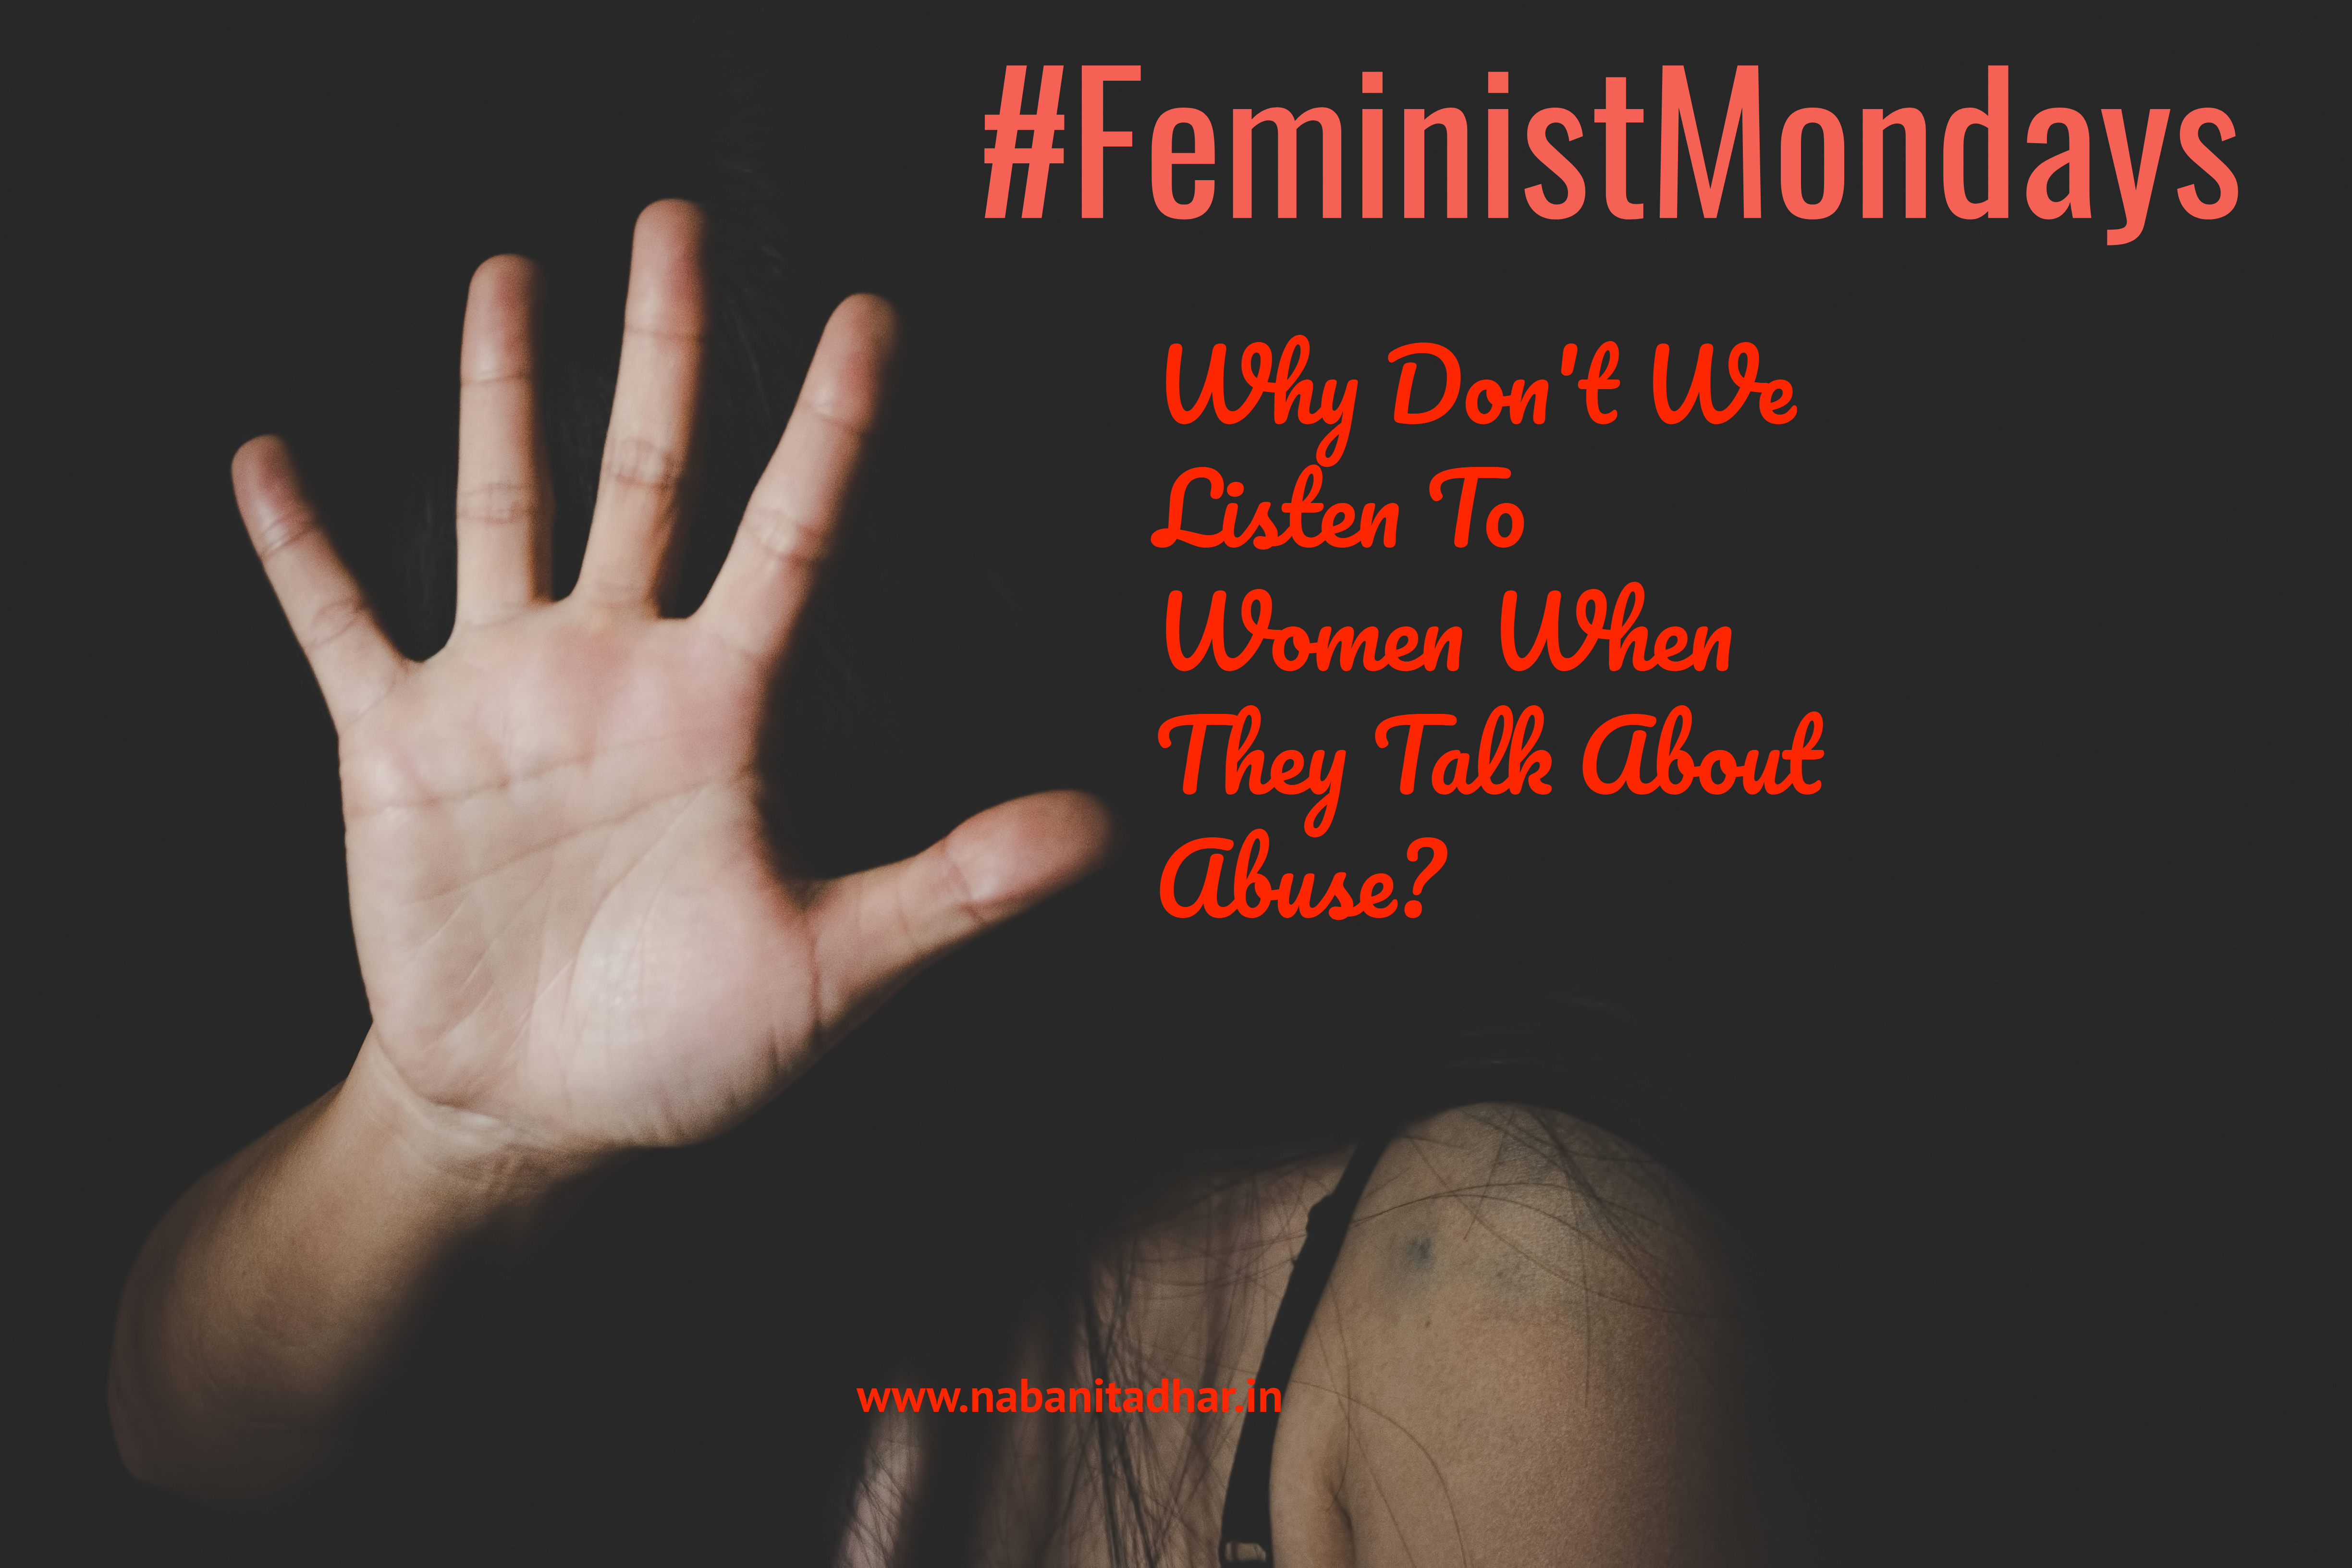 Why don't we listen to women when they talk about abuse? This post is where I think about how unfair it is to shut women up when they try to talk.